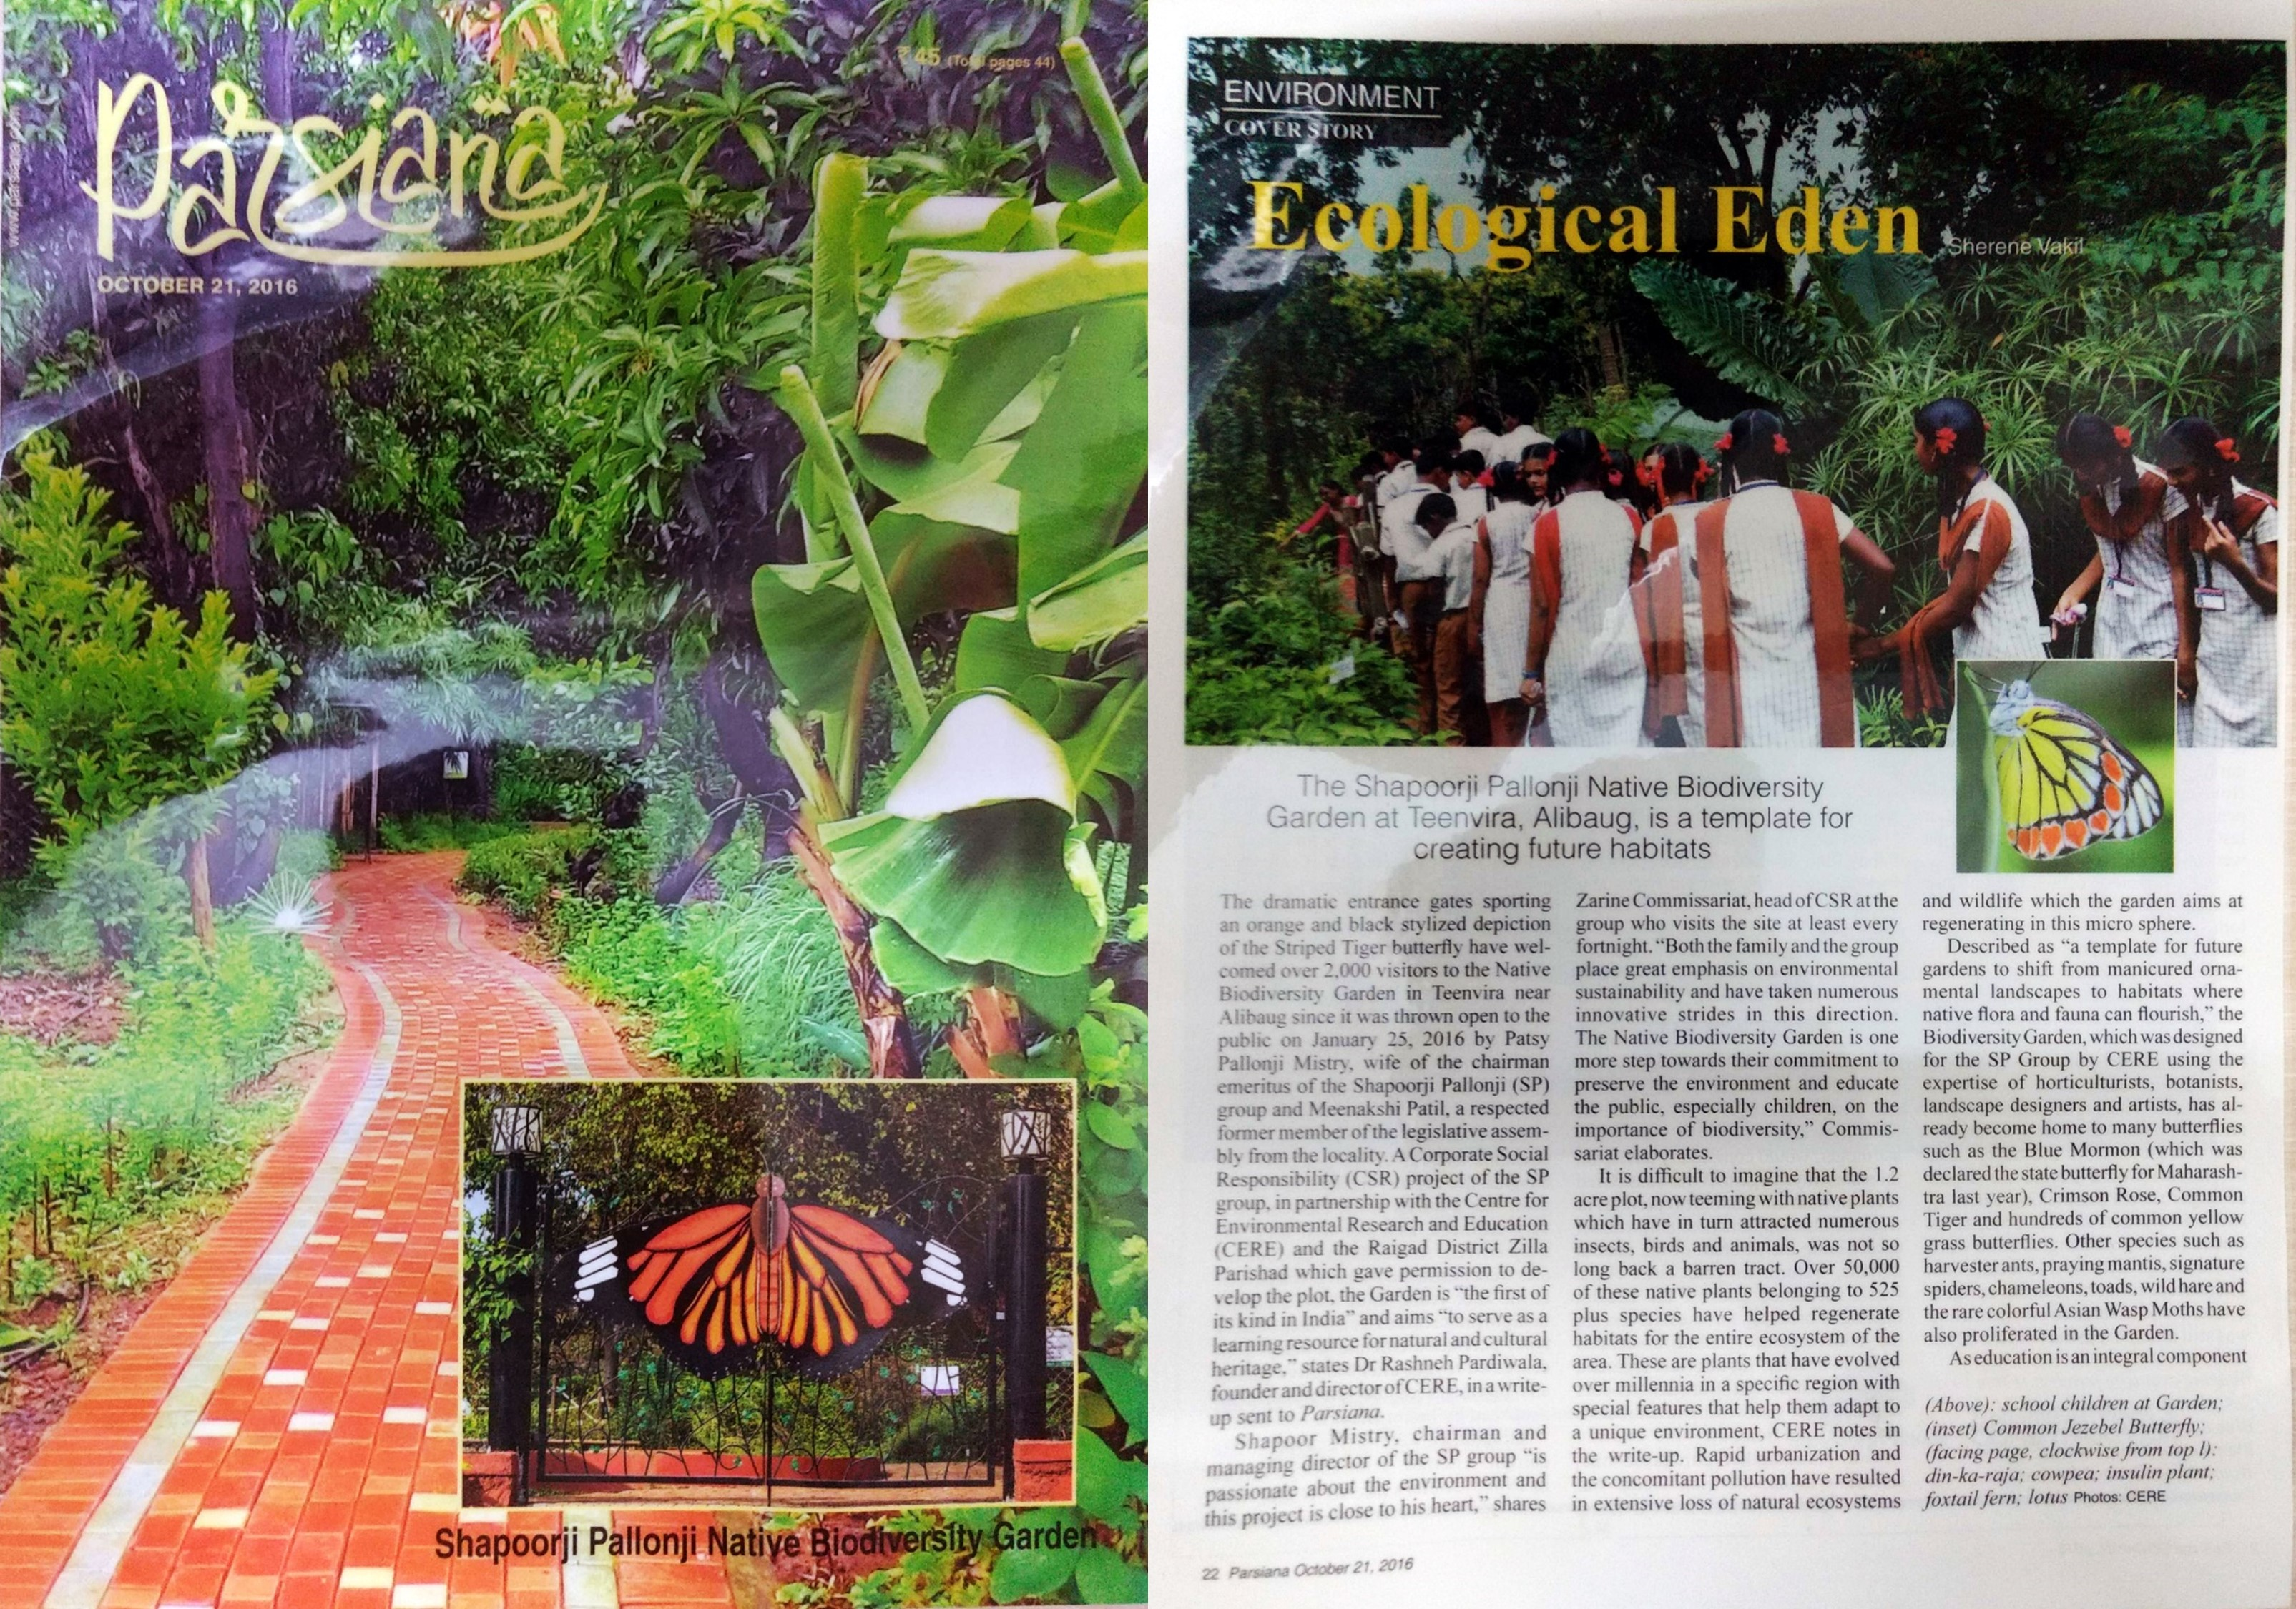 Parsiana - 21st October, 2016 (pages 1 and 2)